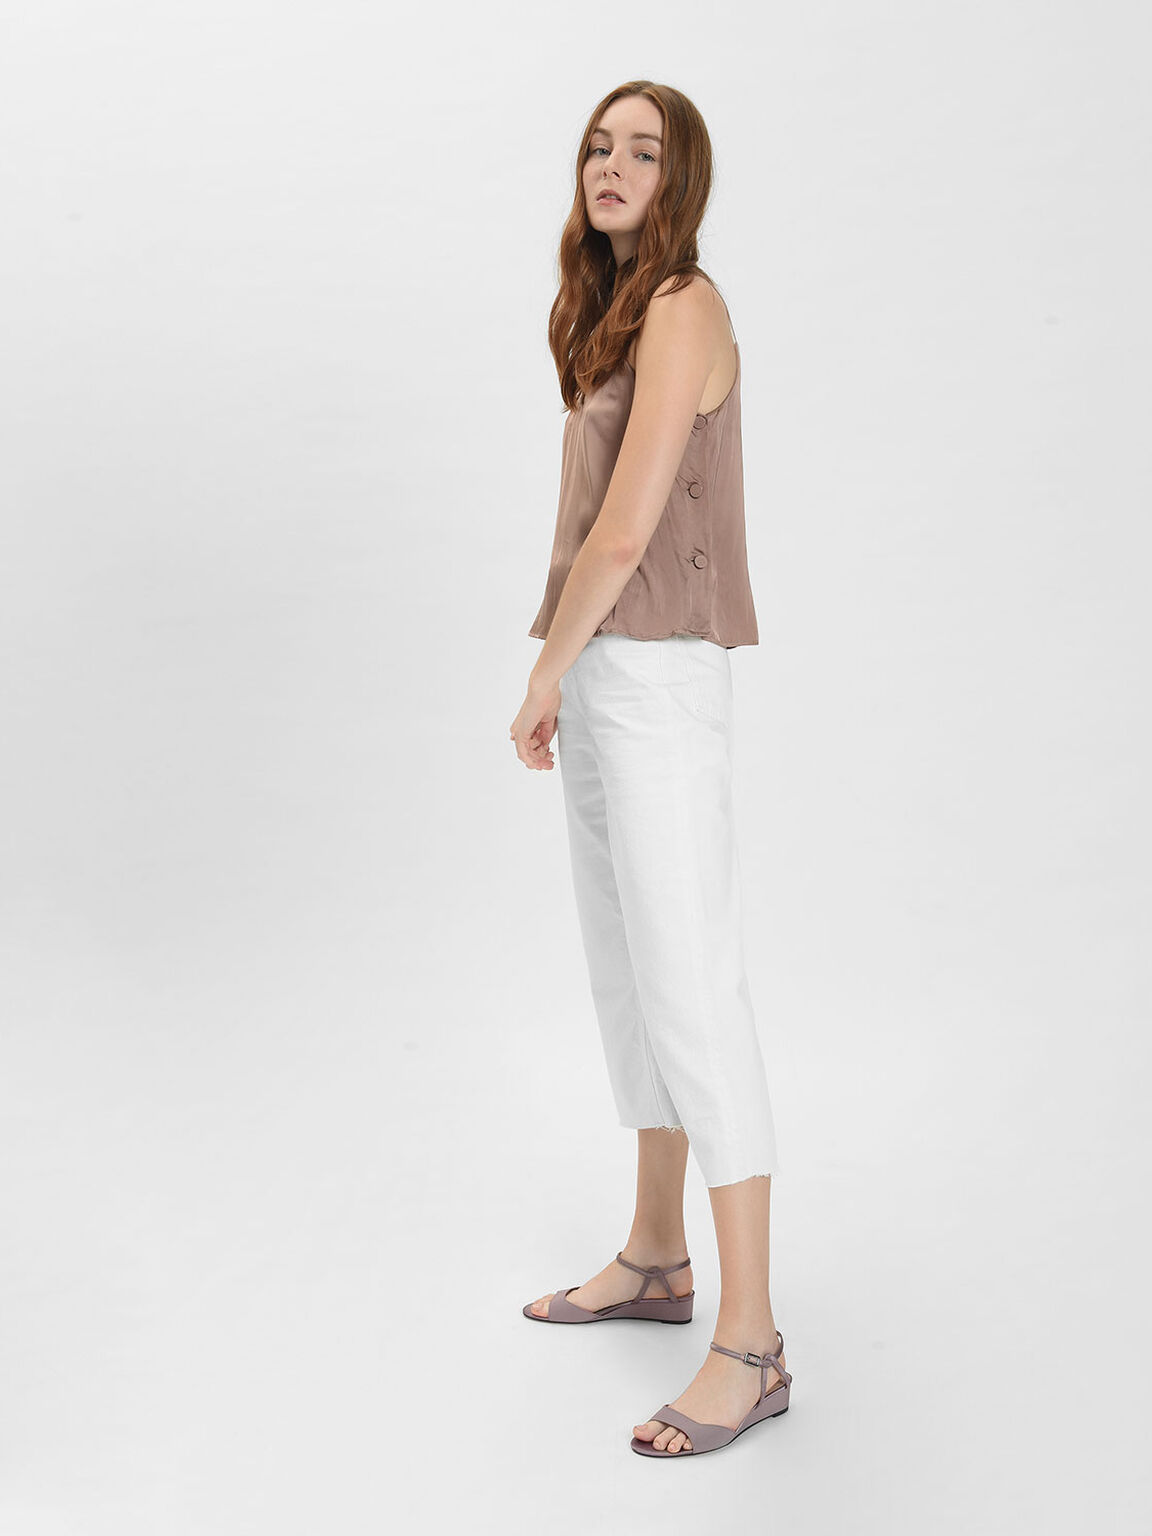 Low Wedge Sandals, Nude, hi-res